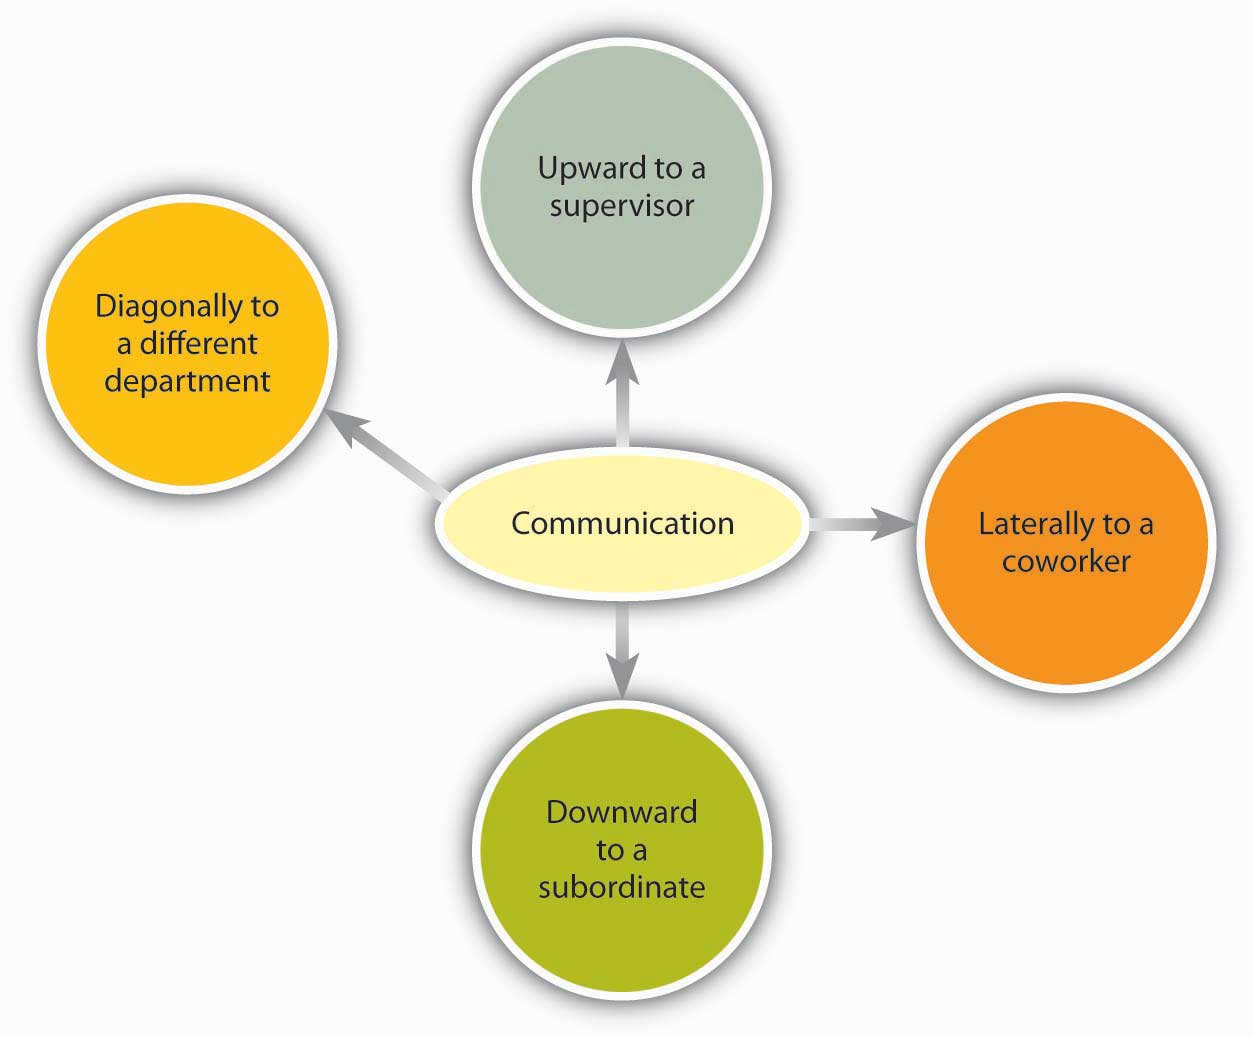 Communication: upward to a supervisor; laterally to a coworker; downward to a subordinate; and diagonally to a different department